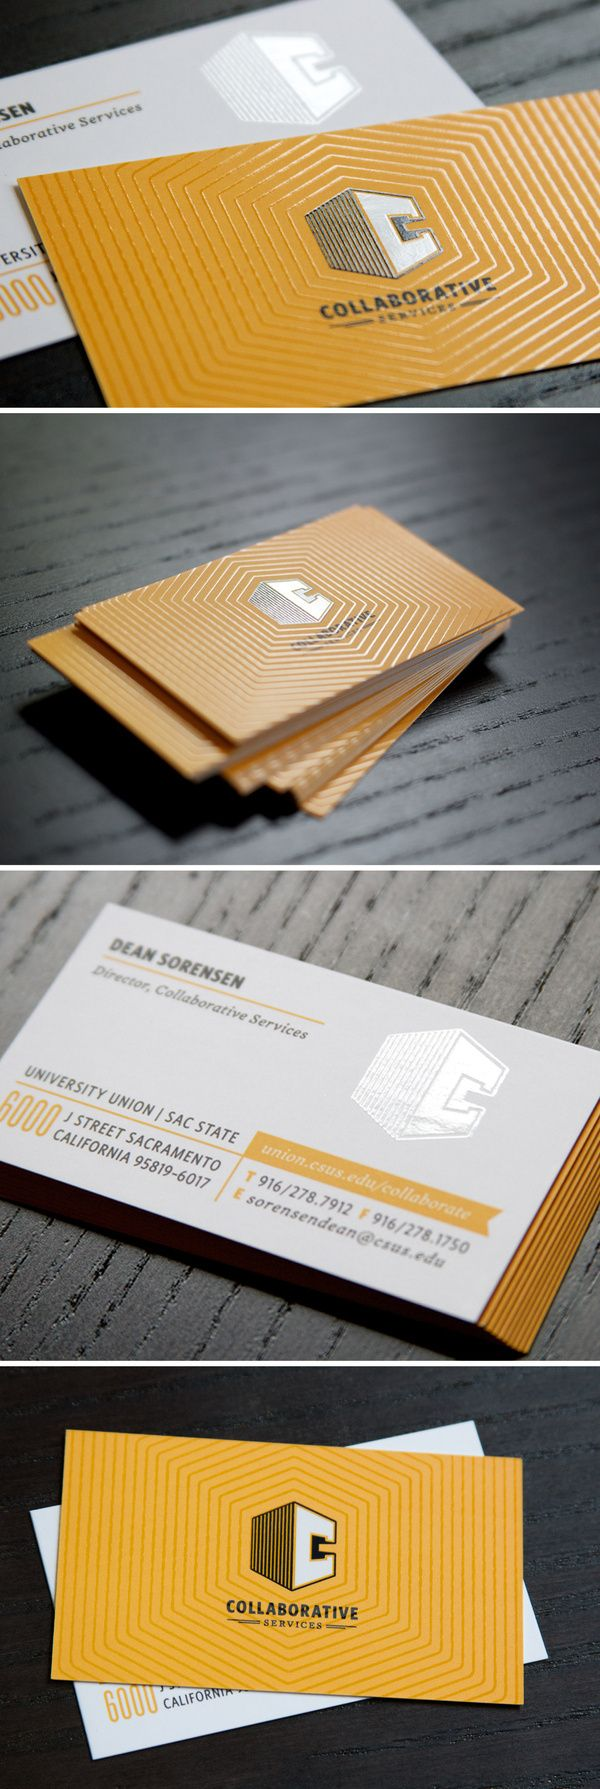 306 best business cards images on Pinterest | Cards, Business ...